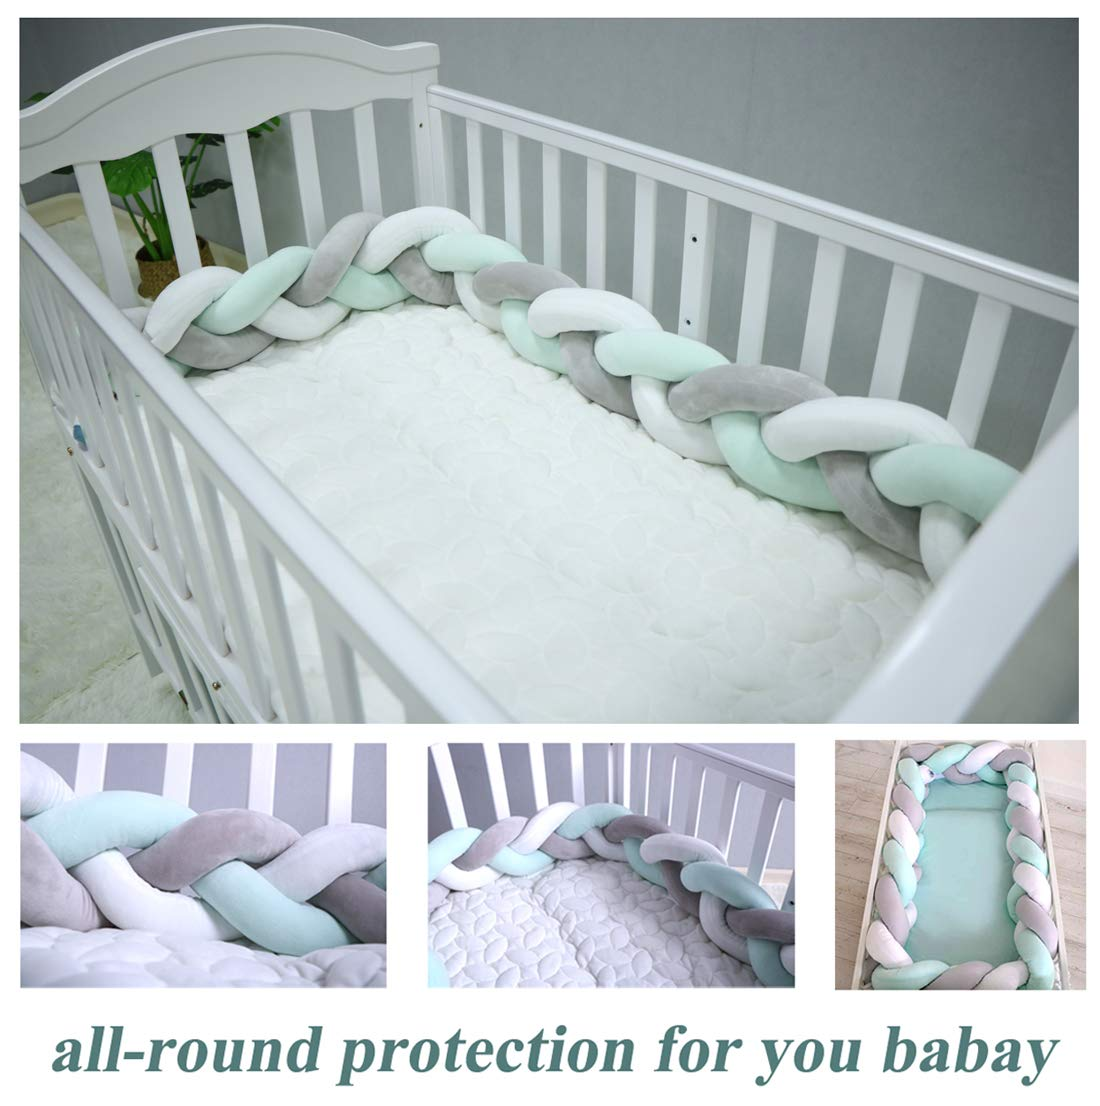 158 inch Baby Crib Bumper Plush Nursery Cradle Decor Knotted Braided Junior Bed Sleep Safety Bedside Padded Plush Cushion for Newborn Gift